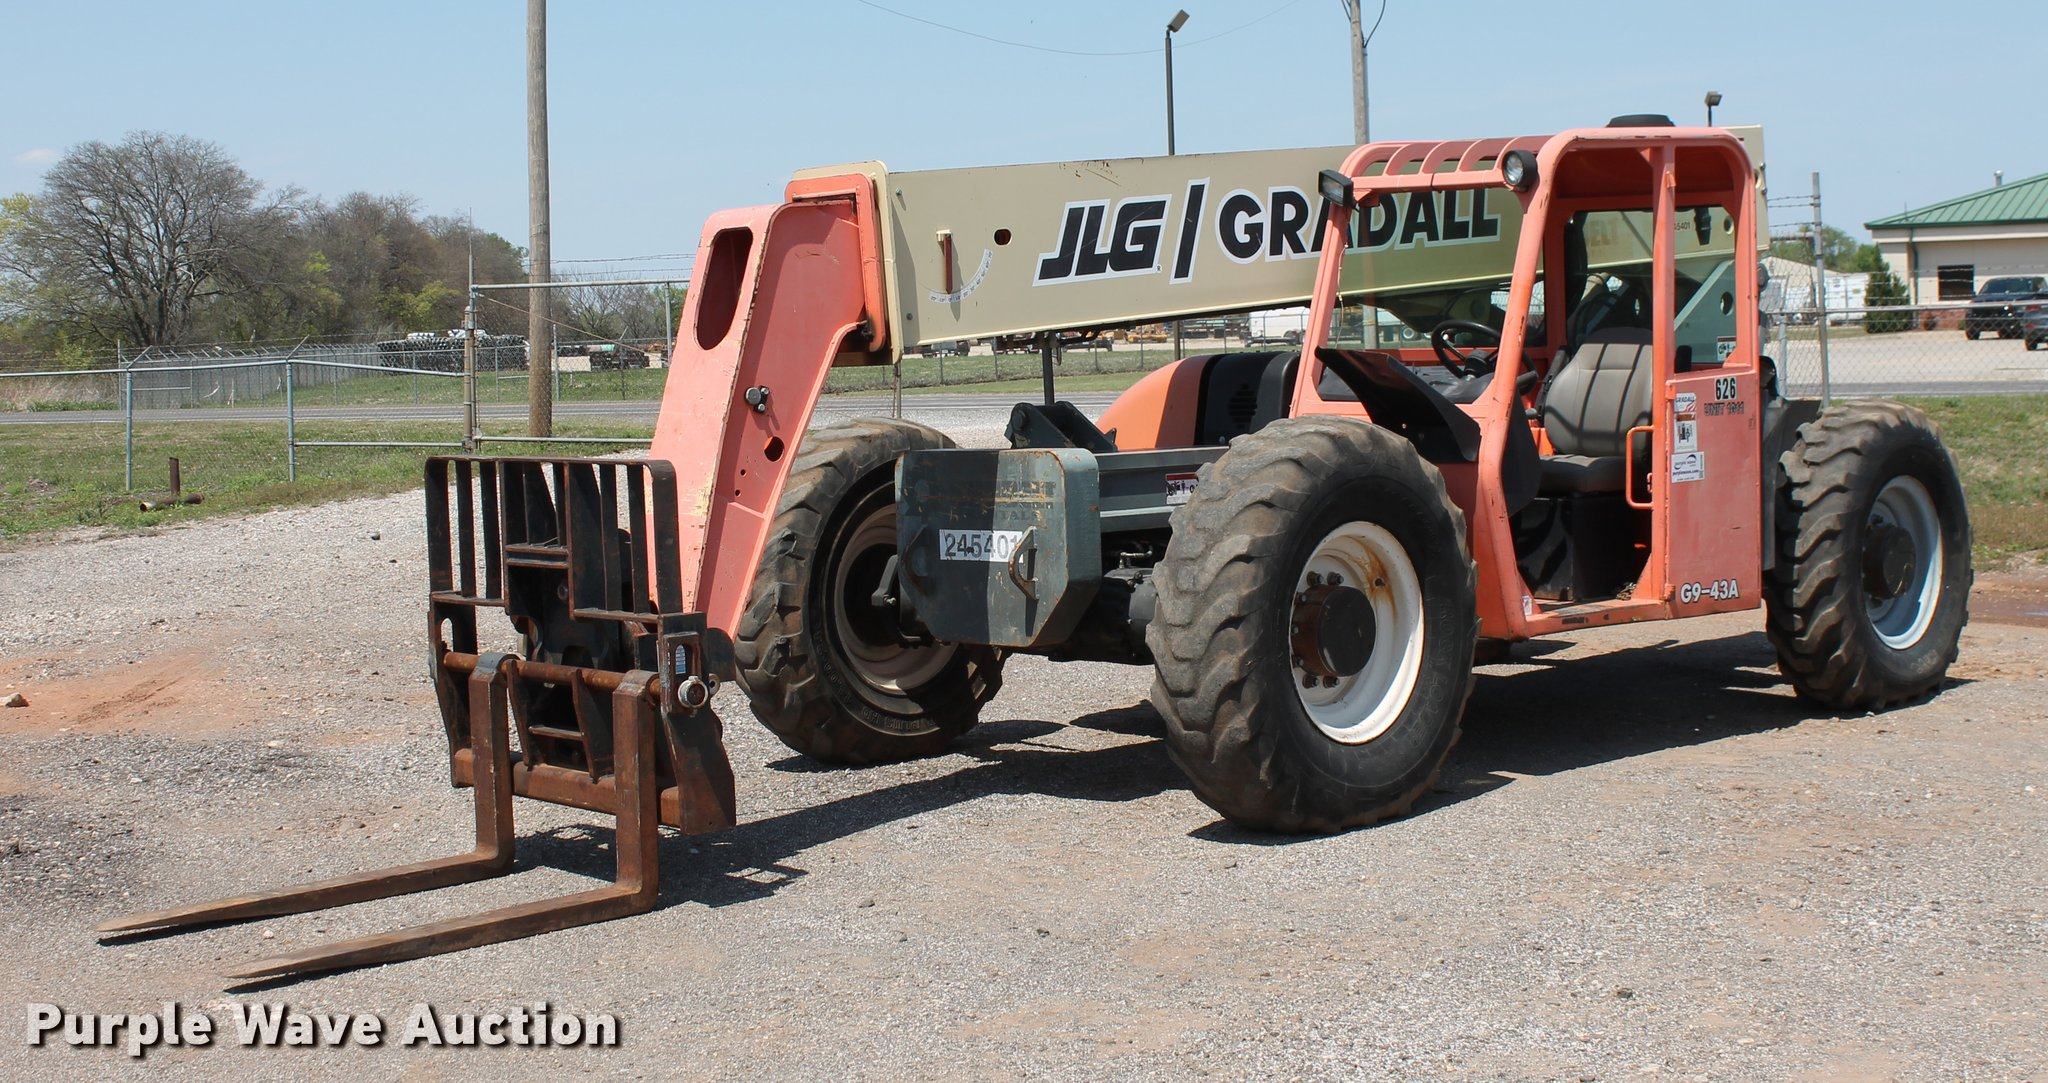 Jlg 20am Wiring Diagram 2004 Gradall G9 43a Telehandler Item Db5206 Sold Ma Full Size In New Window